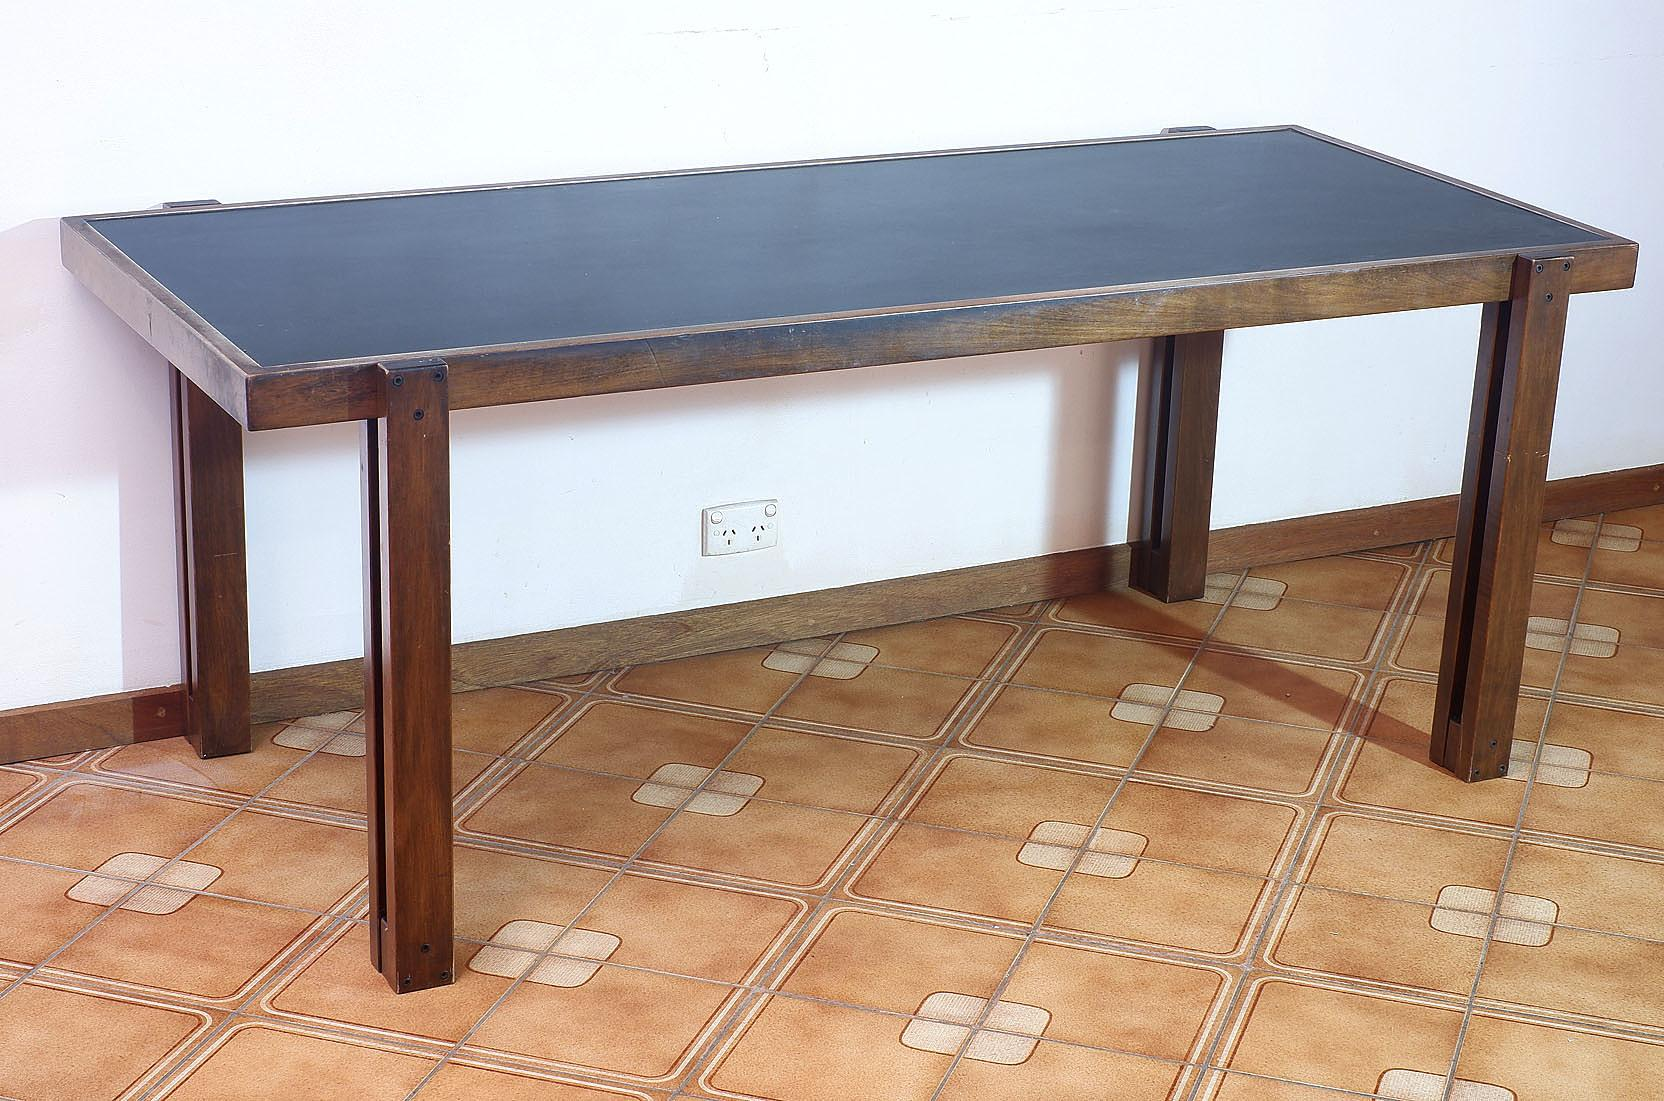 'Unusual 1970s Modernist Dining Table'